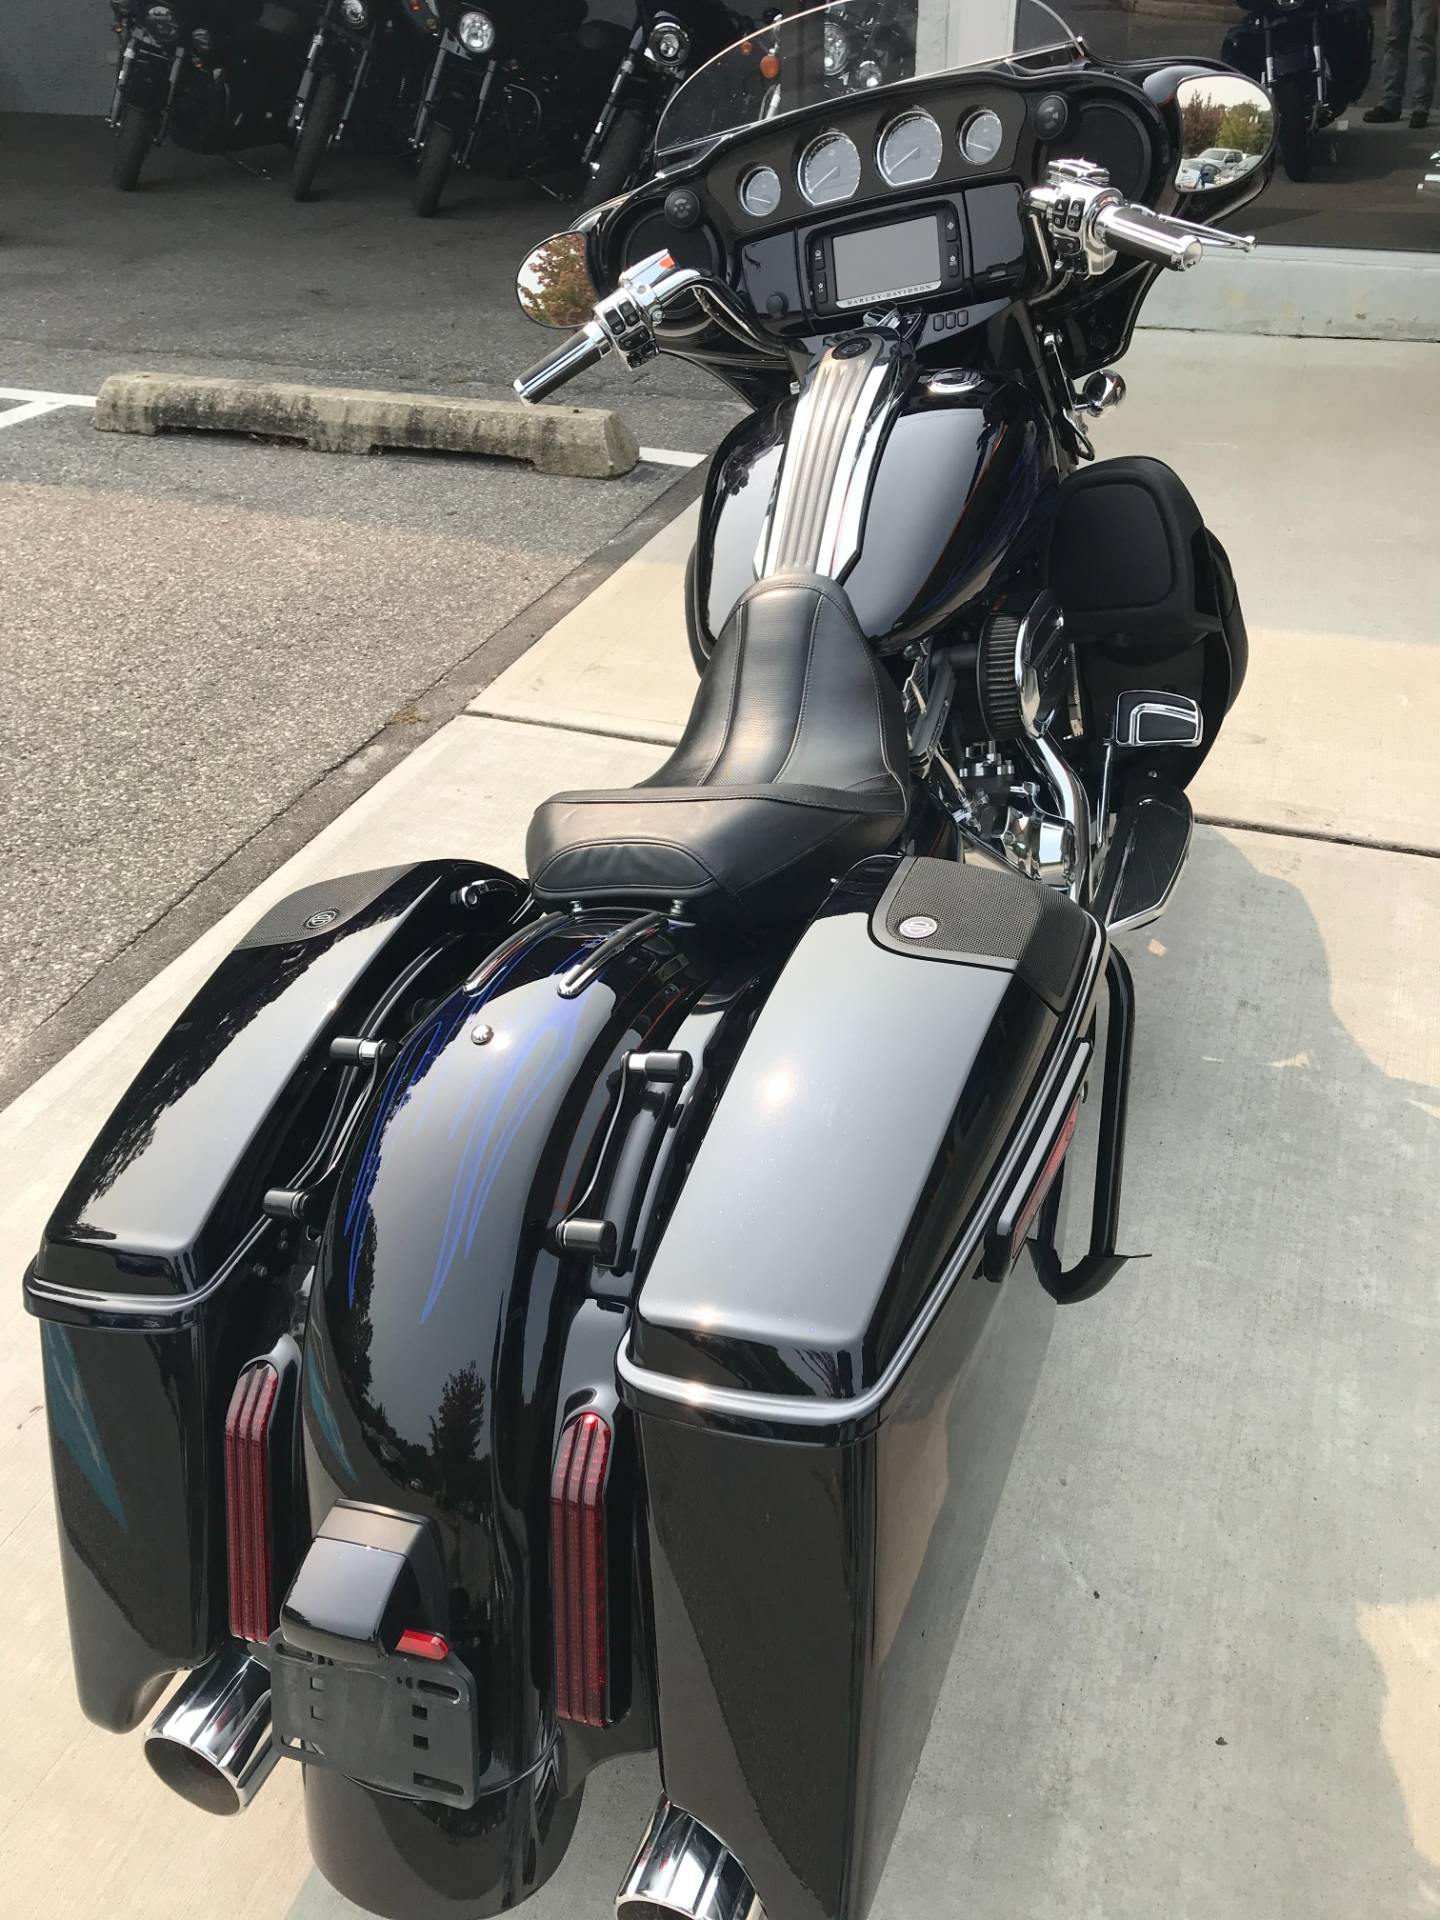 2016 Harley-Davidson CVO STREETGLIDE in Lakewood, New Jersey - Photo 6